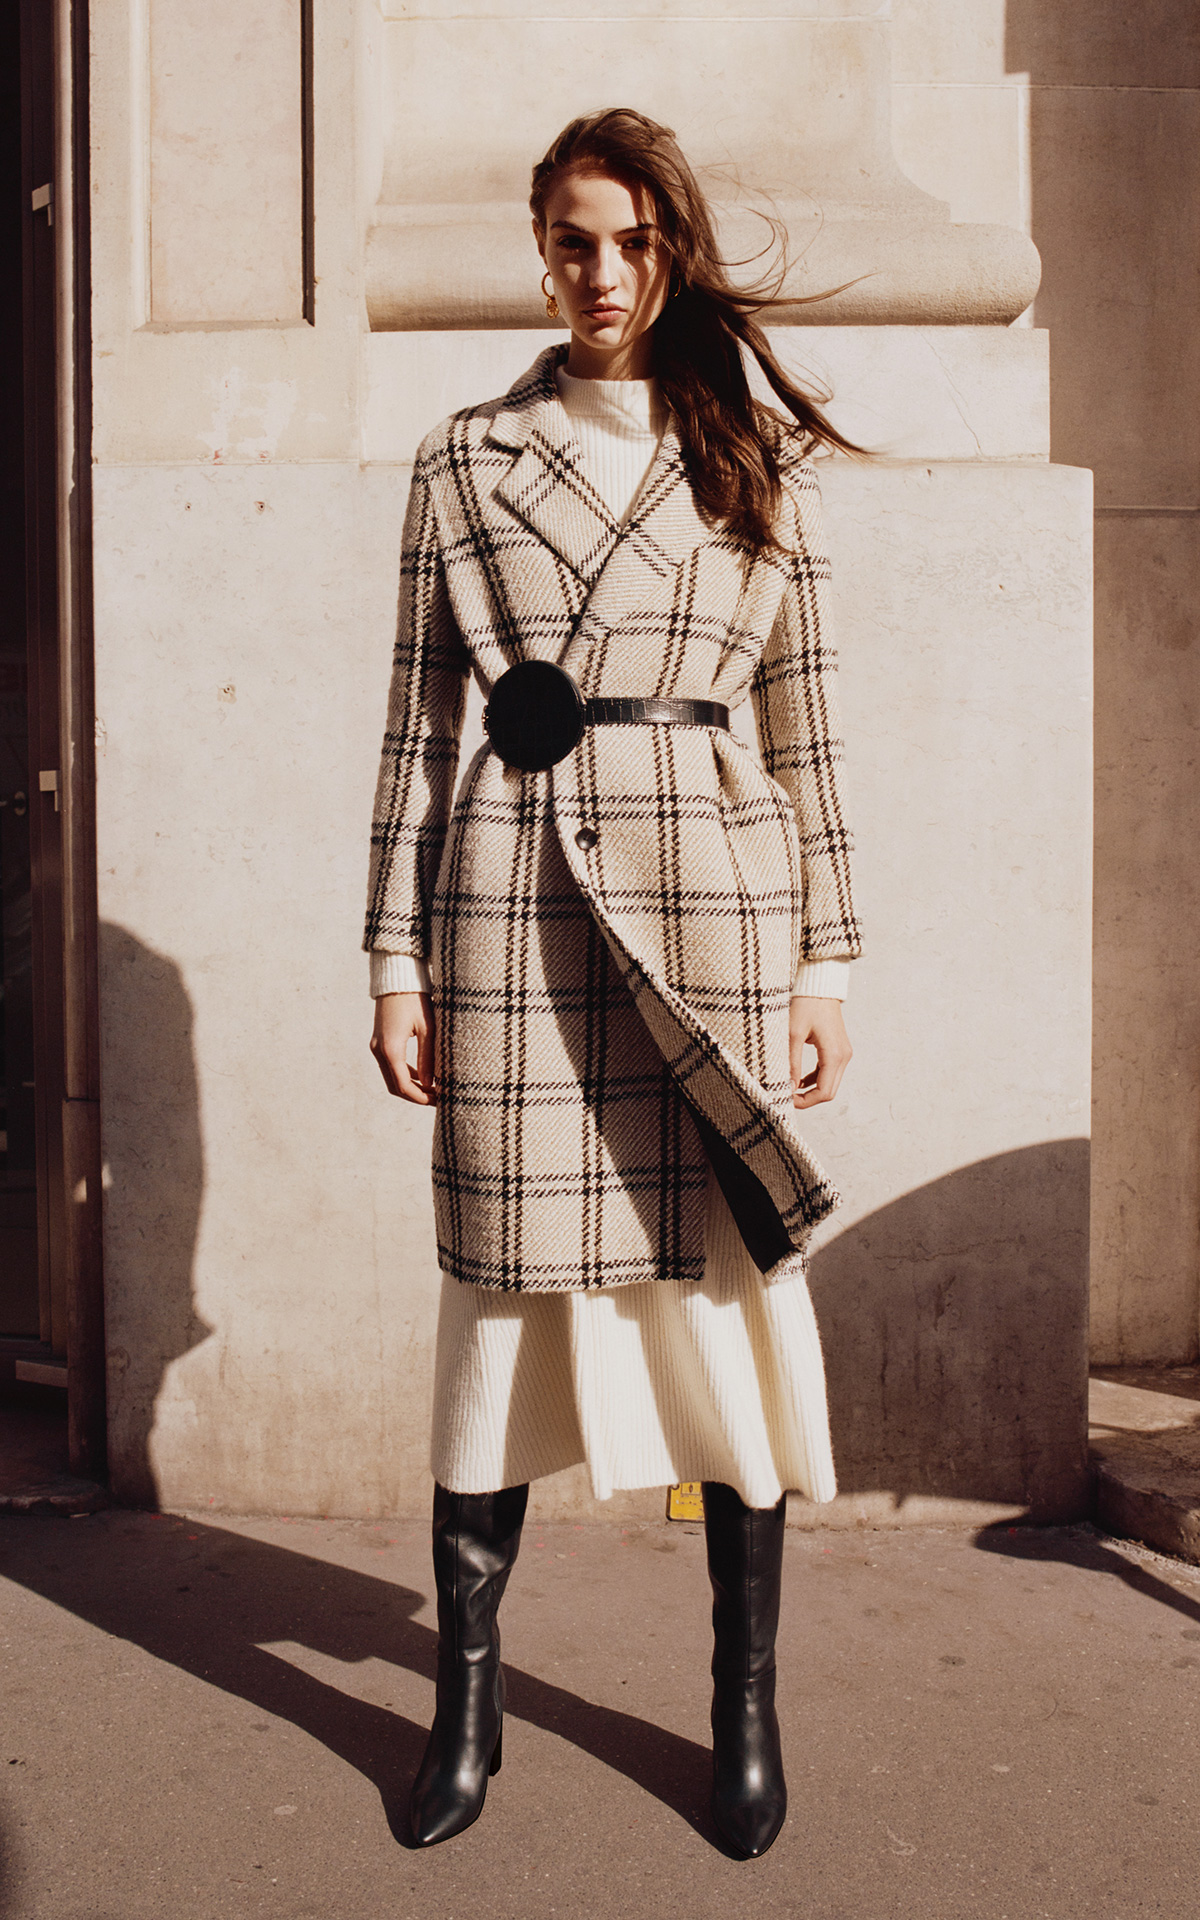 Girl with a checked coat